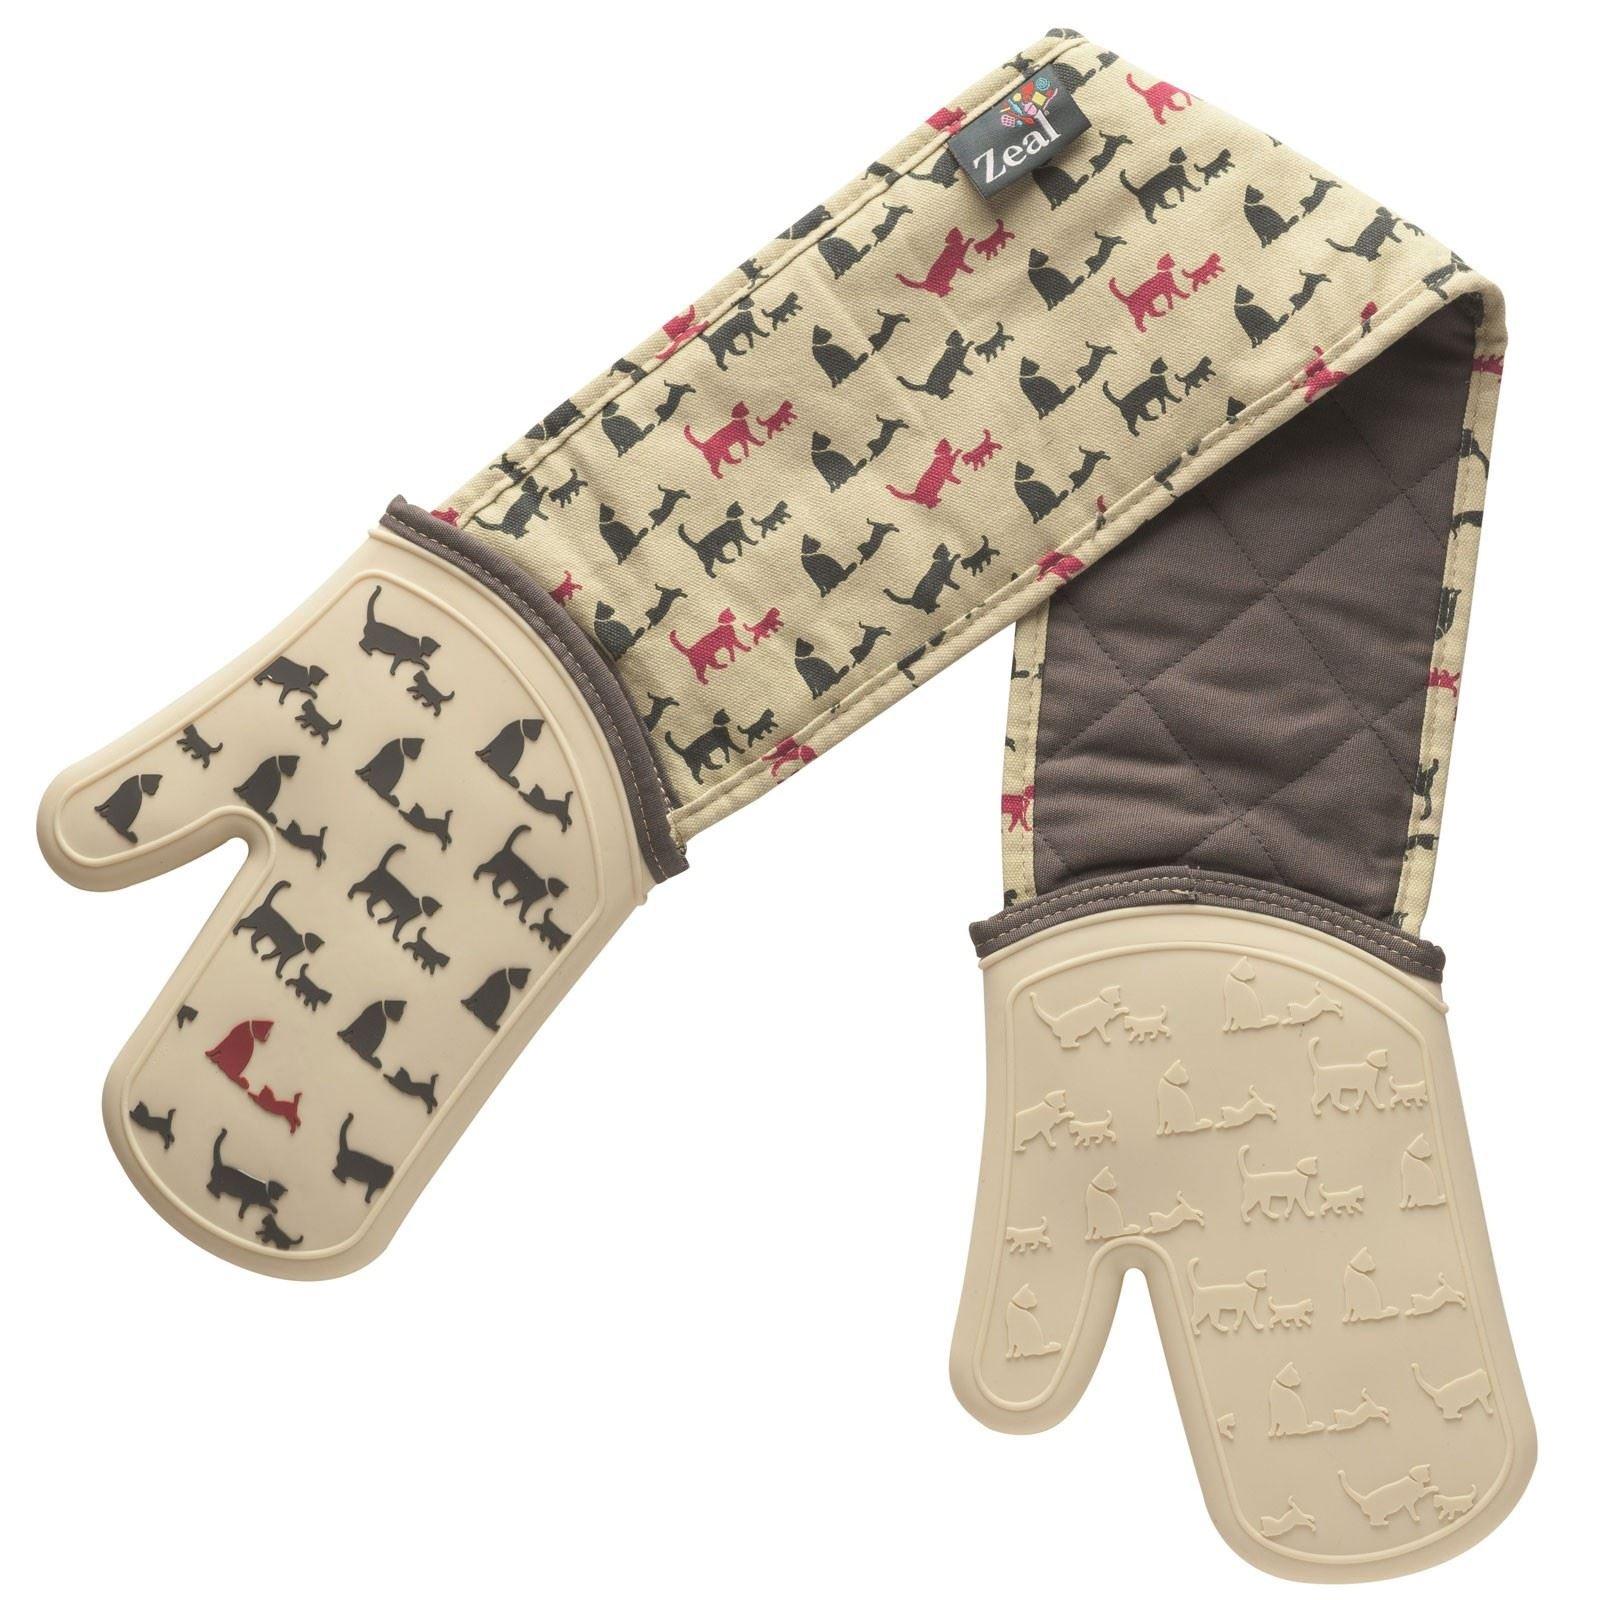 Zeal Steam Stop Silicone Waterproof Oven Mitts/Gloves, Cats Design by Zeal (Image #1)